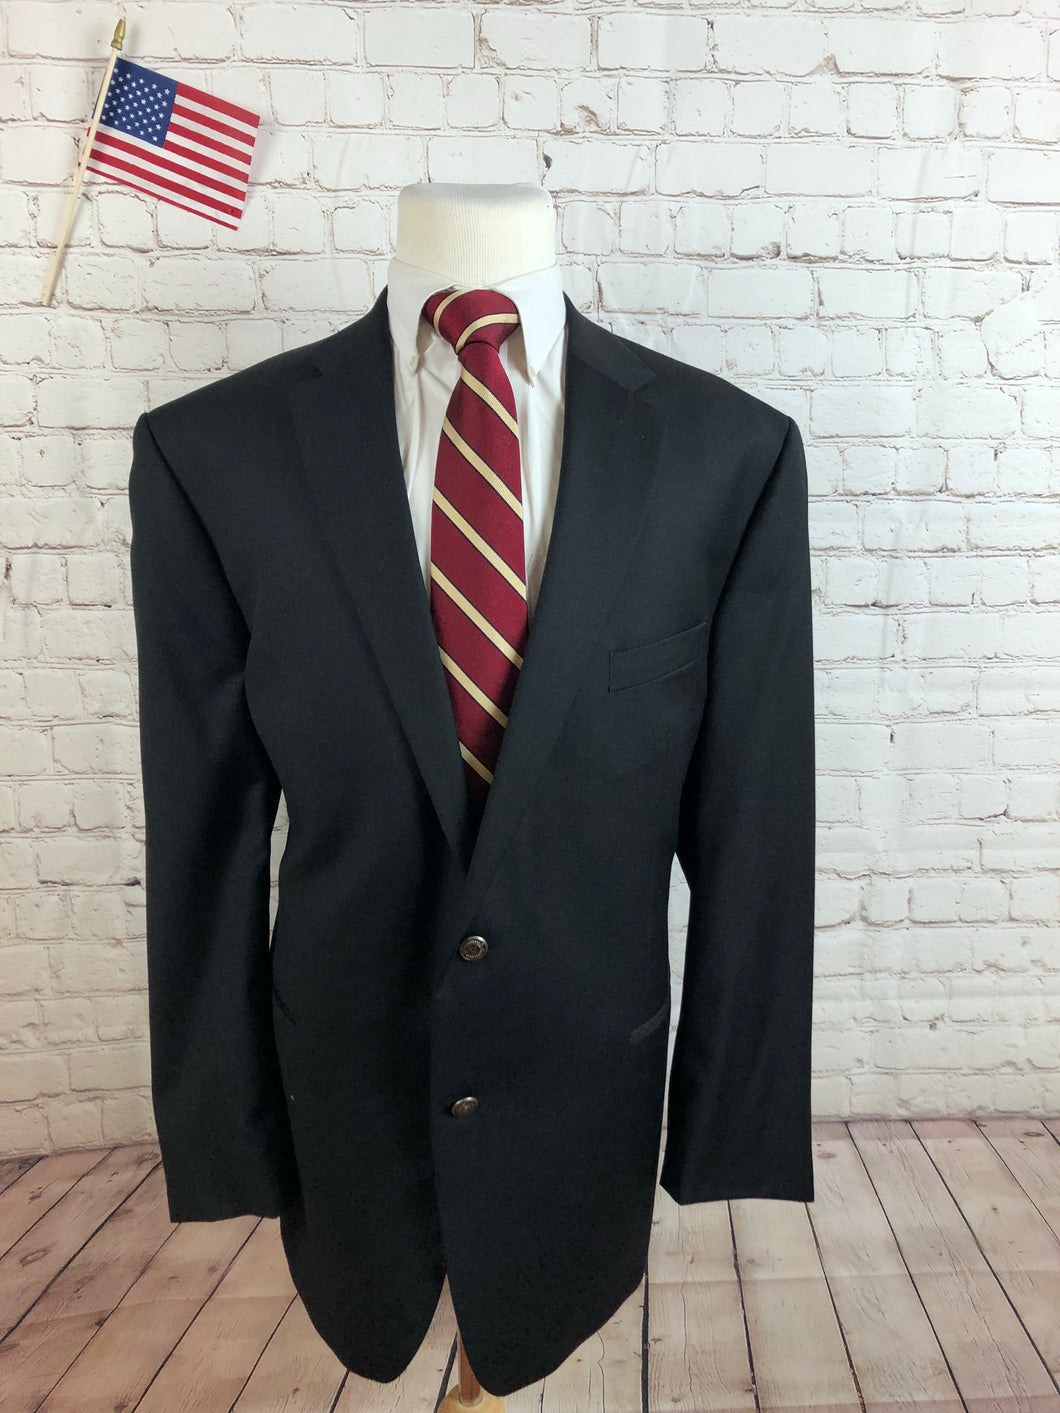 Chaps Men's Black WOOL Blazer Sport Coat Suit Jacket Size 48L $395 - SUIT CHARITY OUTLET